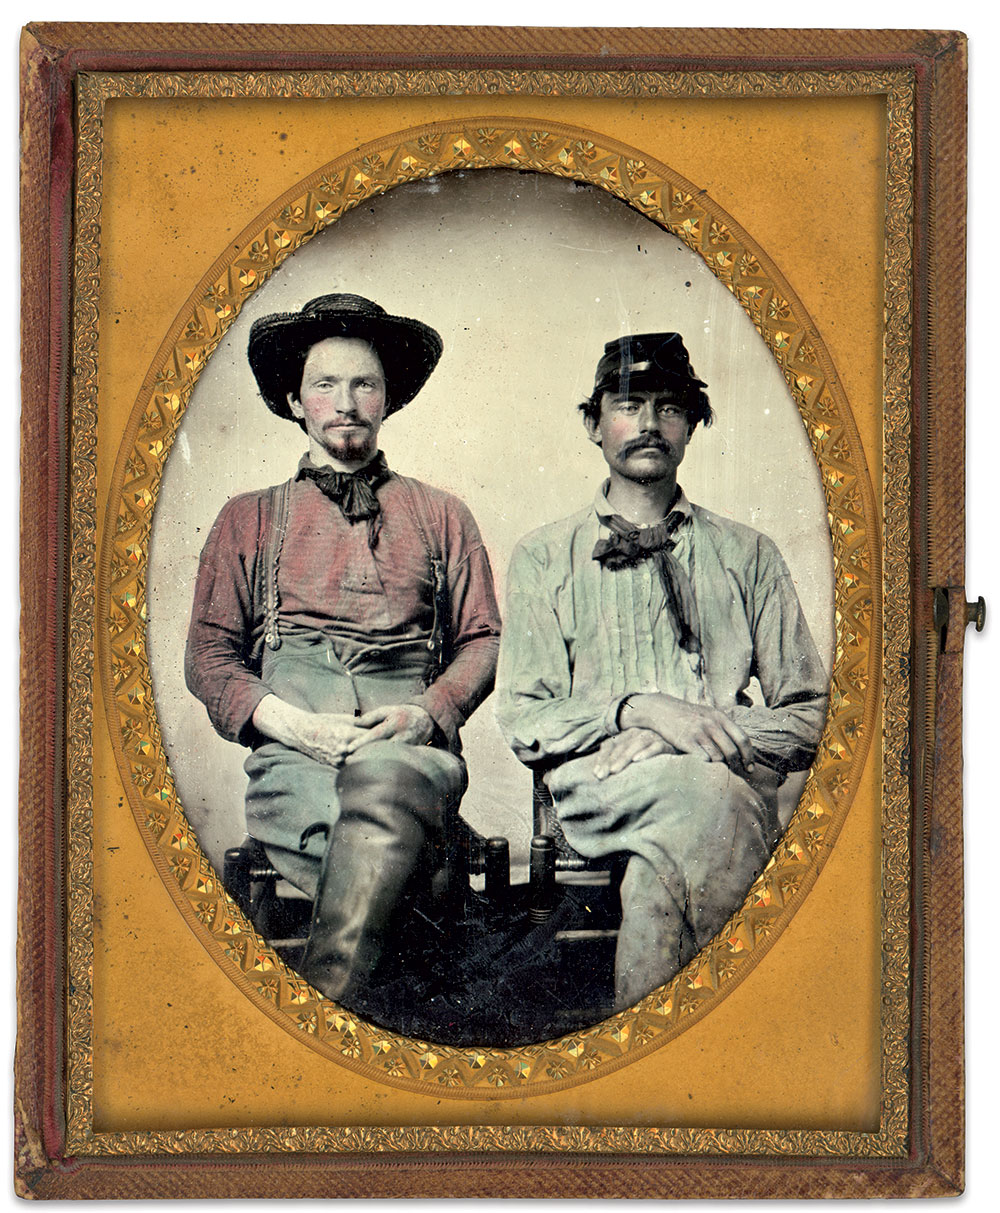 Half-plate ambrotype by an anonymous photographer. Charles Darden Collection.